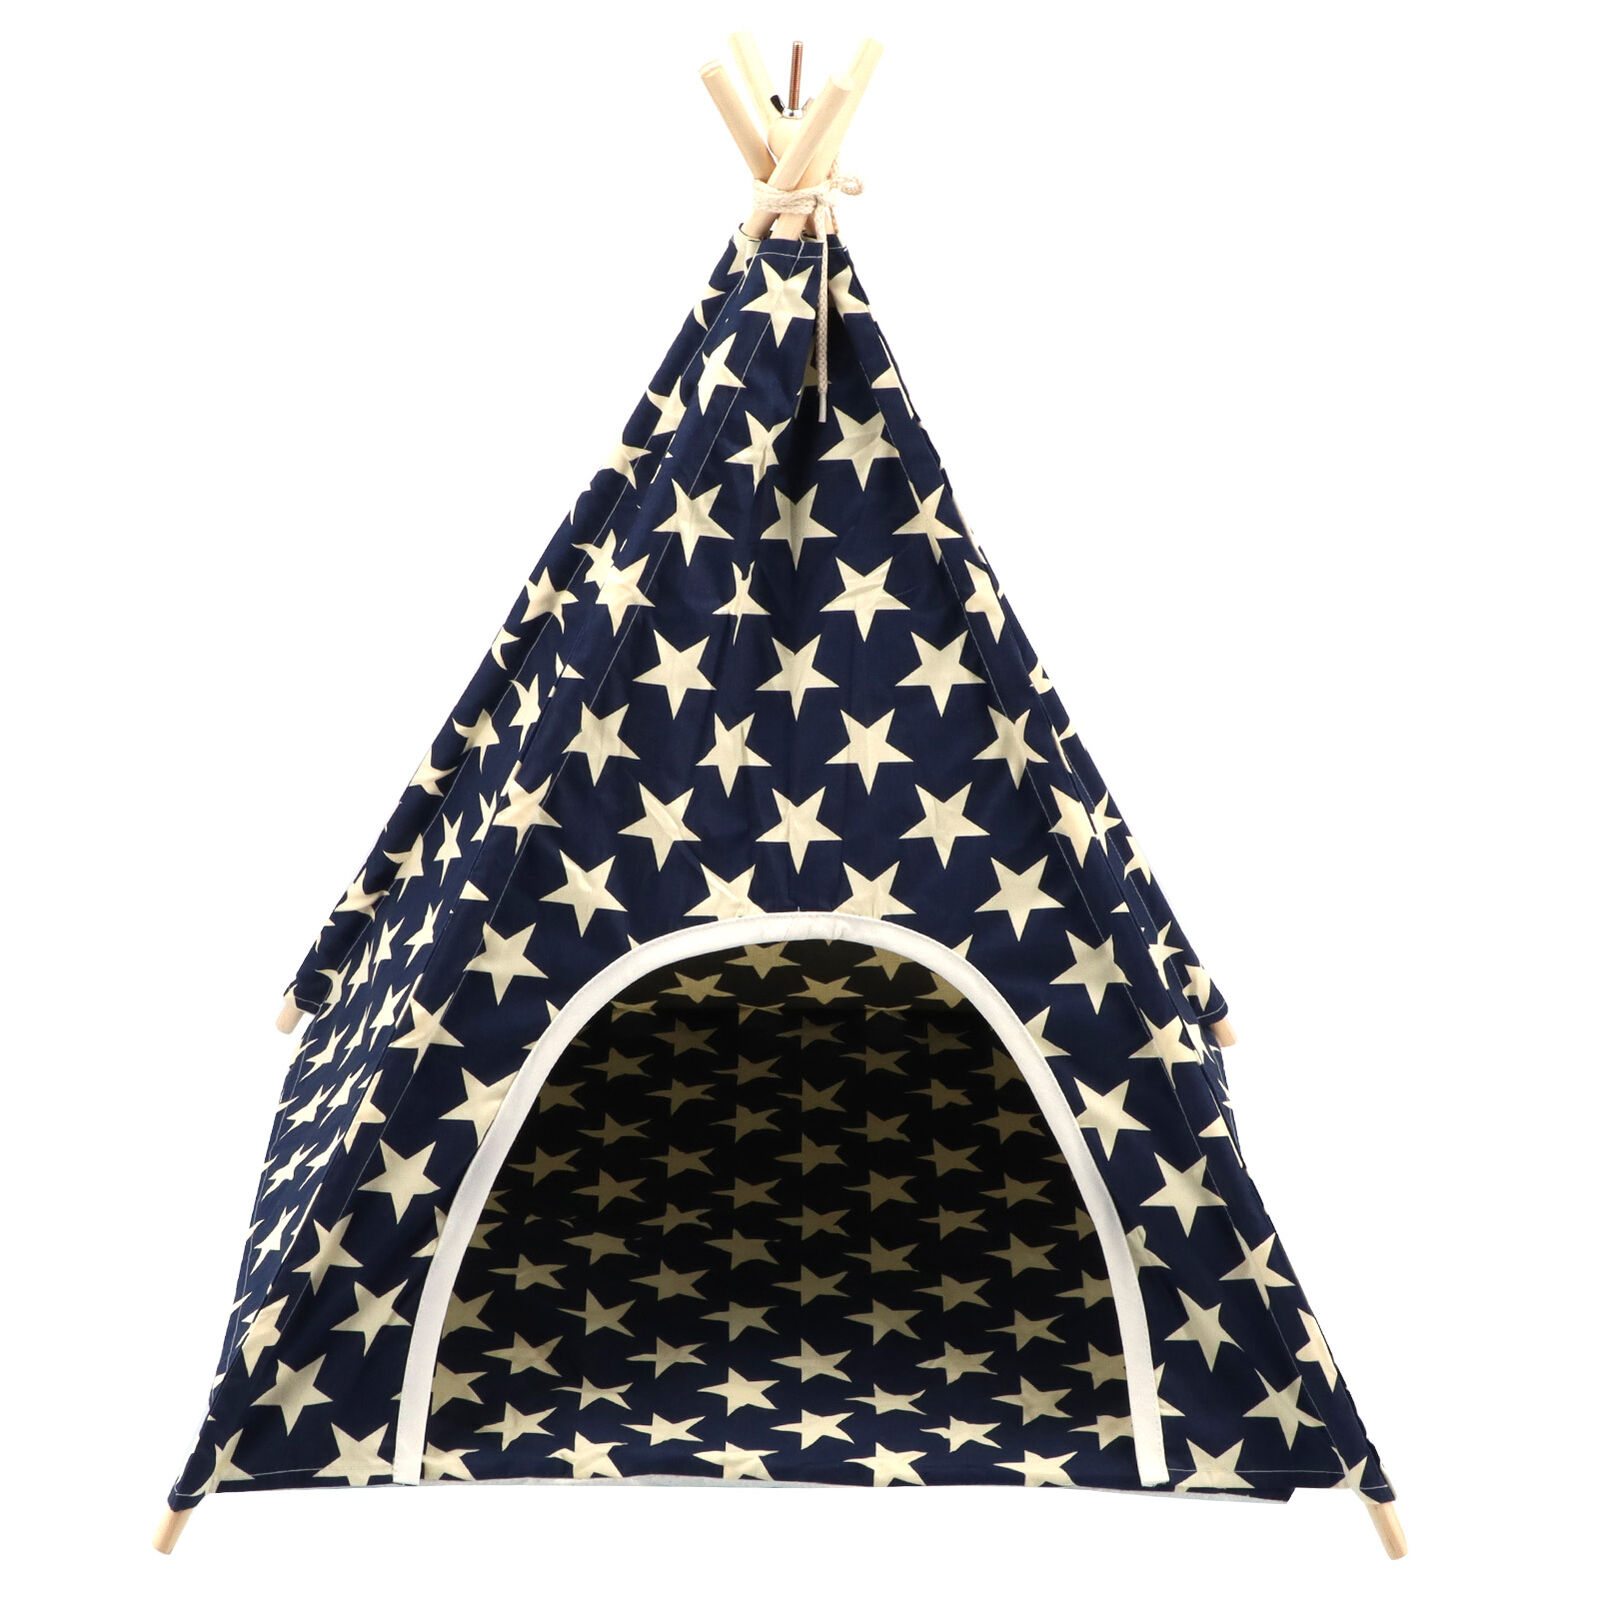 Pet Tent Dog Bed Play House Indoor And Outdoor Pet Tent Foldable Pet Tent House - $46.97